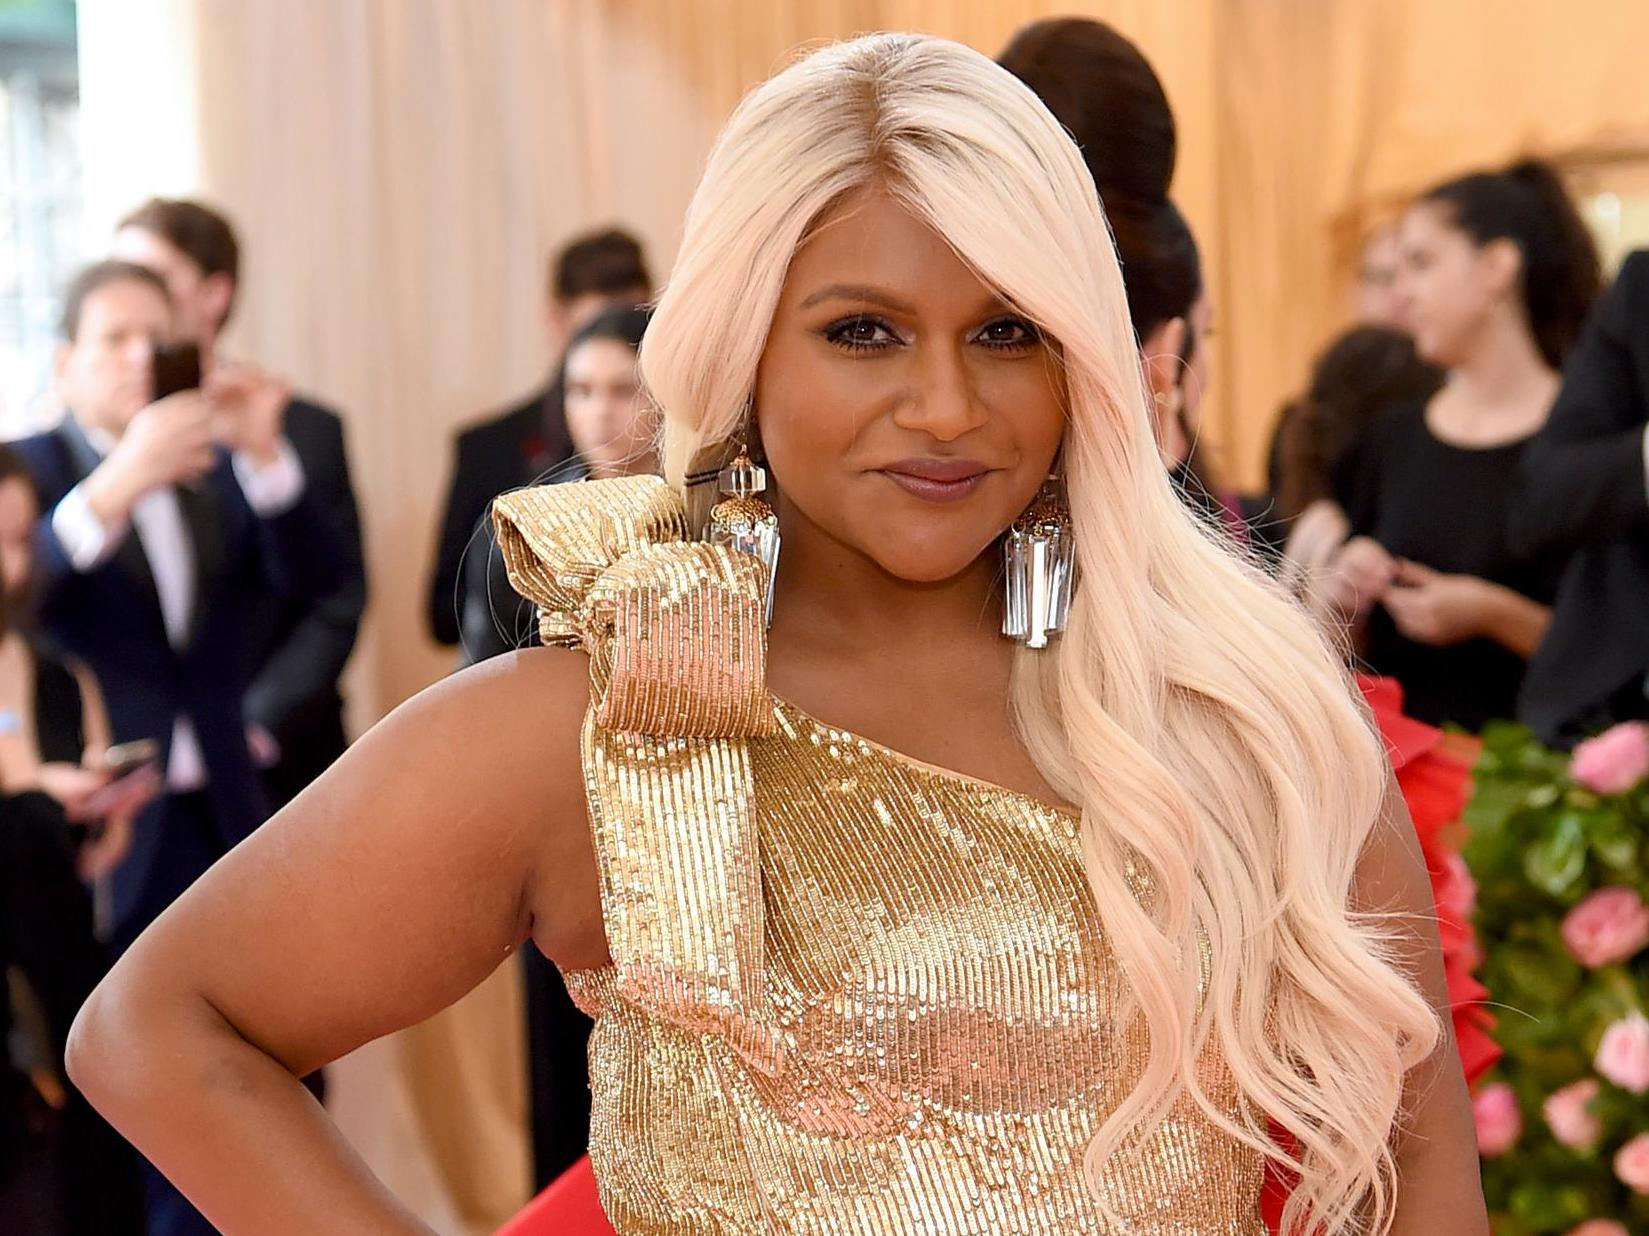 Met Gala 2019 Mindy Kaling Goes Blonde For Camp Fashion Spectacle The Independent